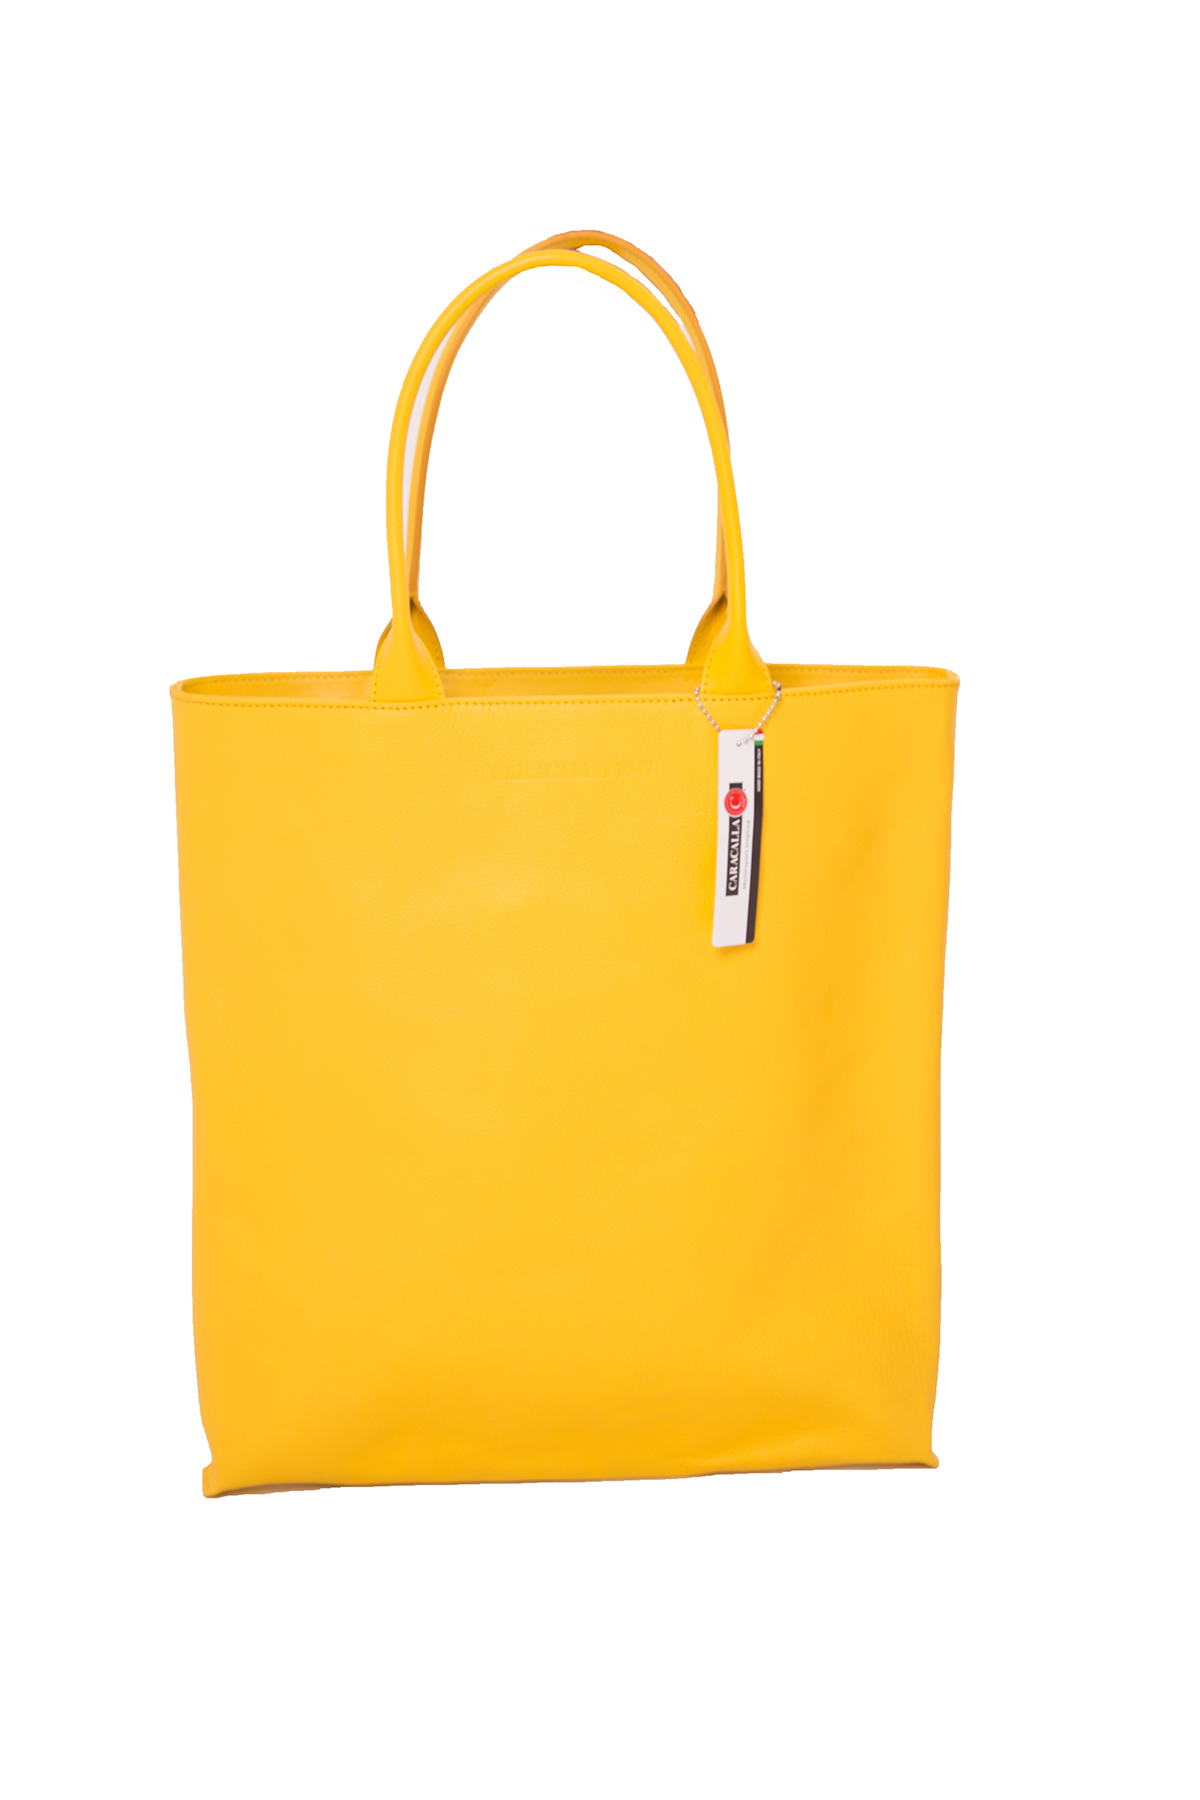 Modena Tote by Caracalla in Yellow